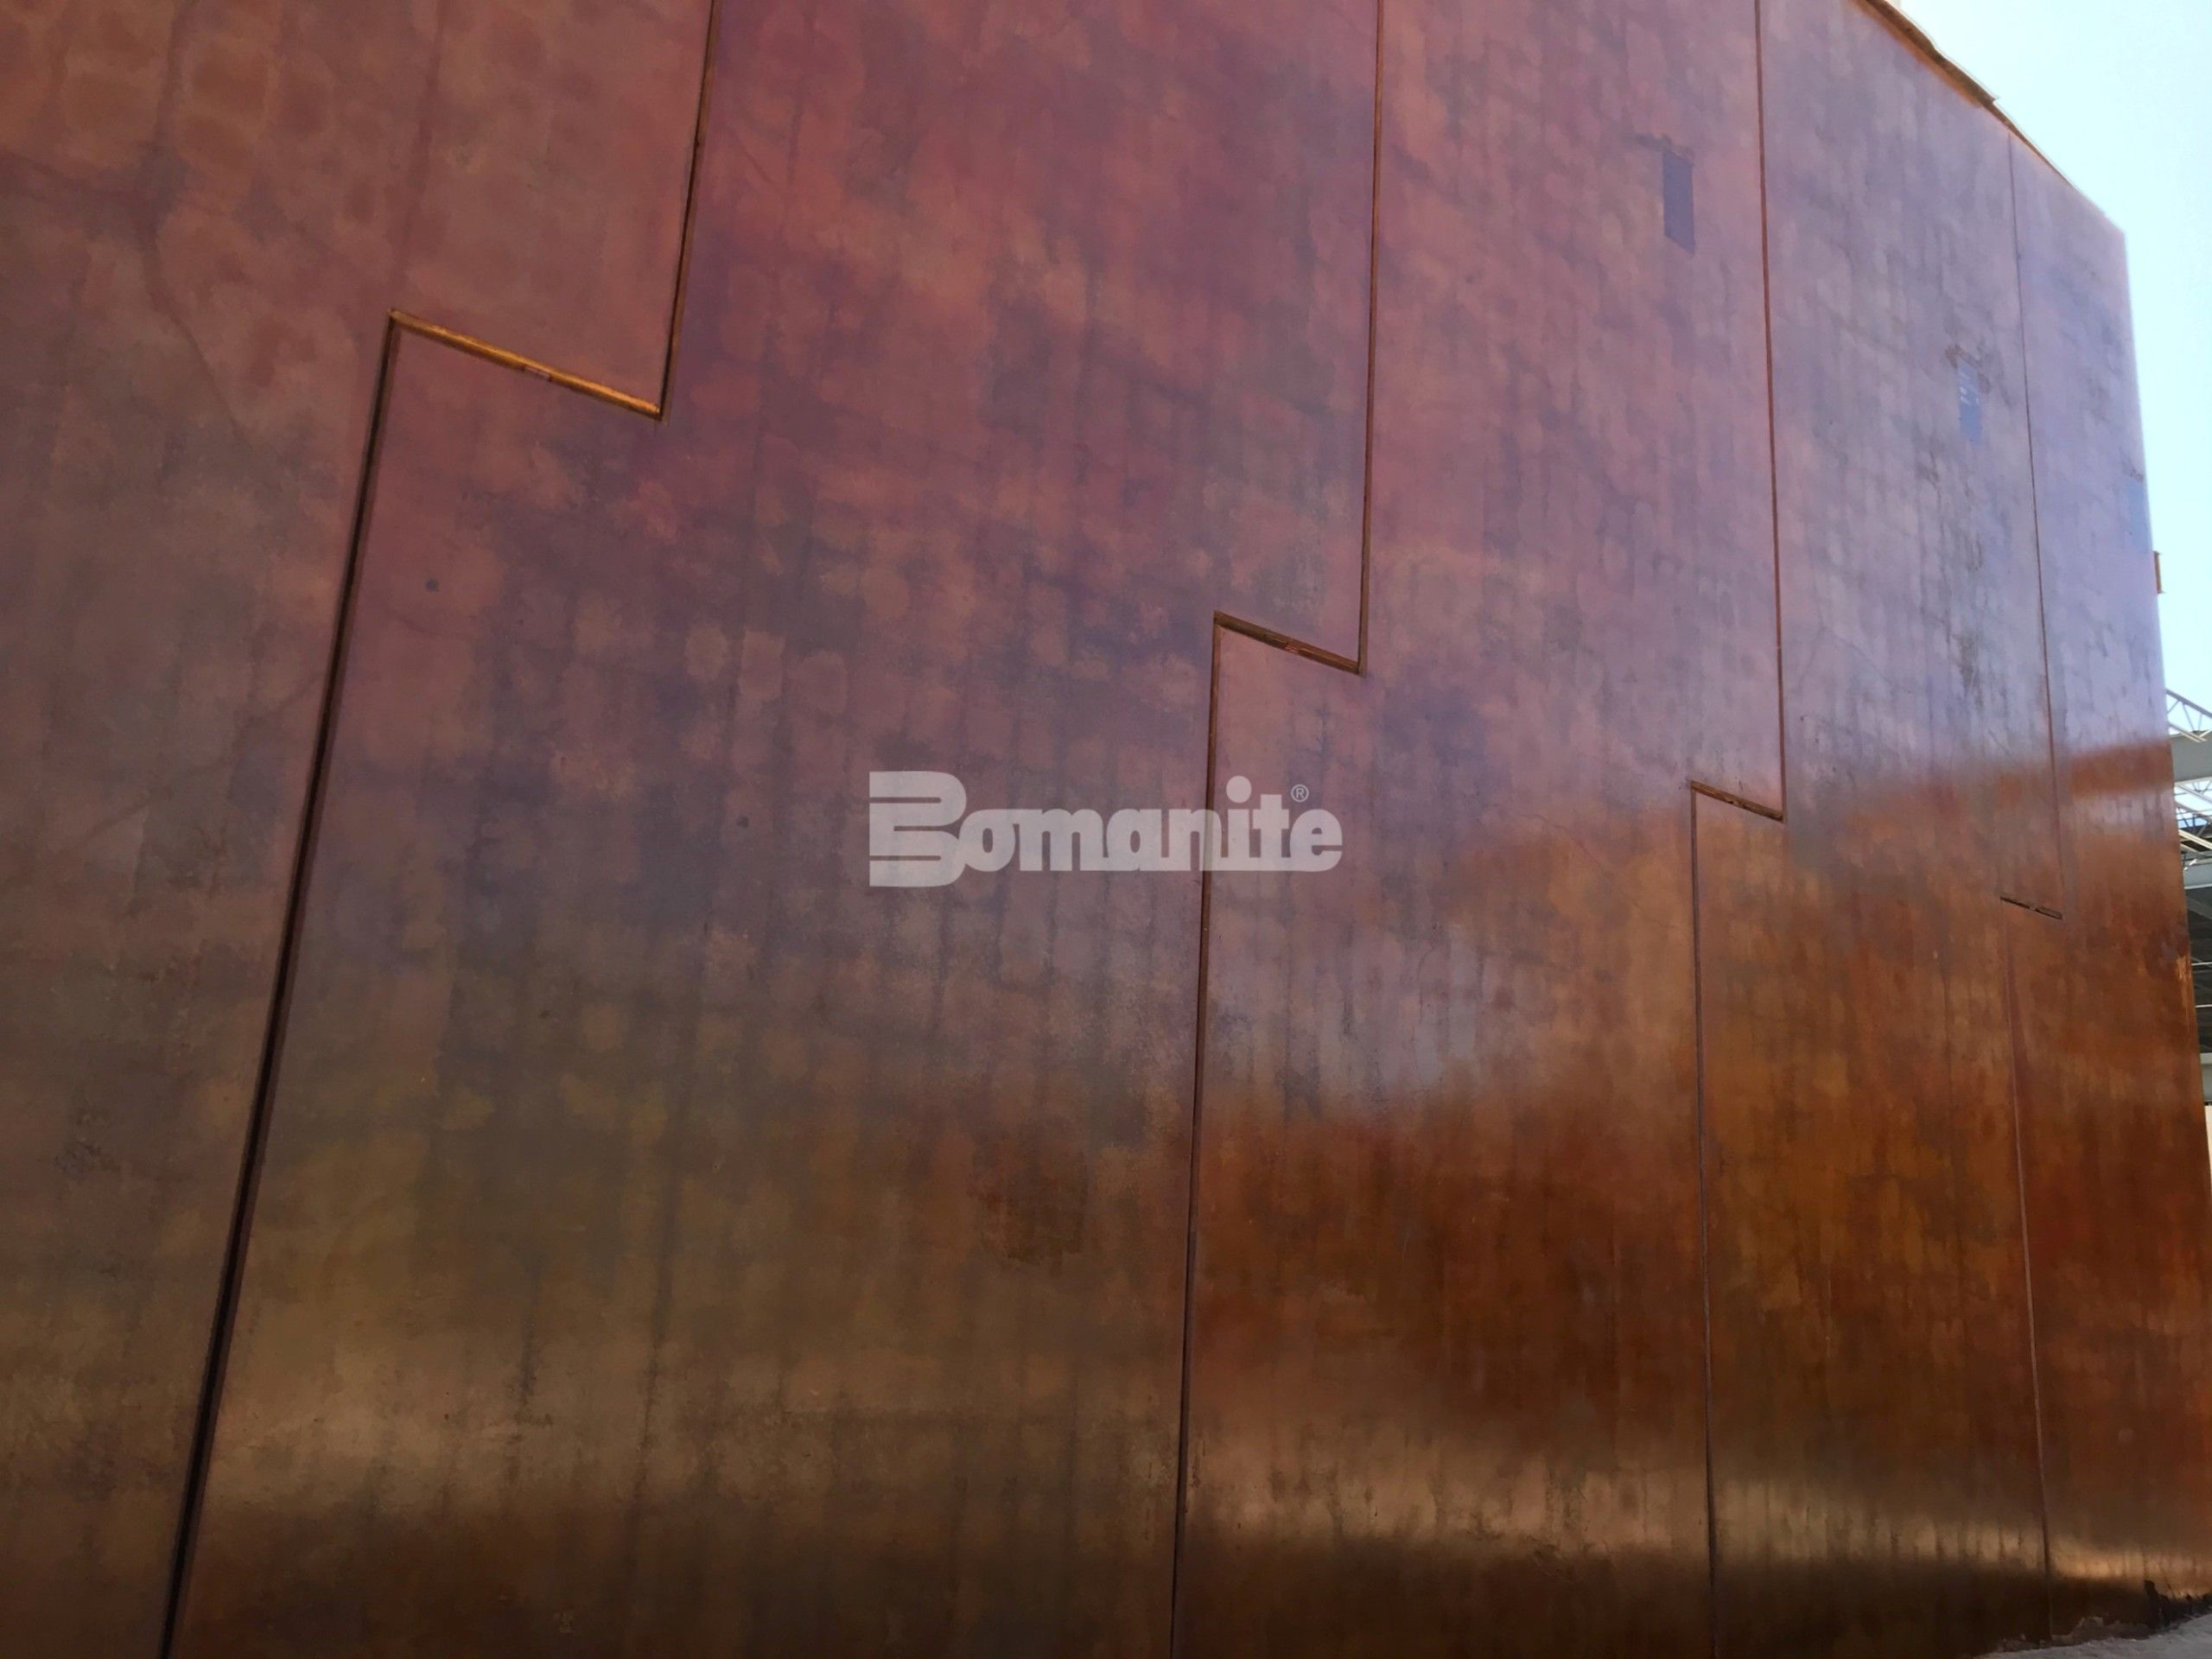 Bomanite Artistic Concrete colored the Bomanite chemically stained concrete wall panels installed by Sundt Construction for the Eastside Regional Park Rec Center known as the Beast Urban Park by the community of El Paso, TX.